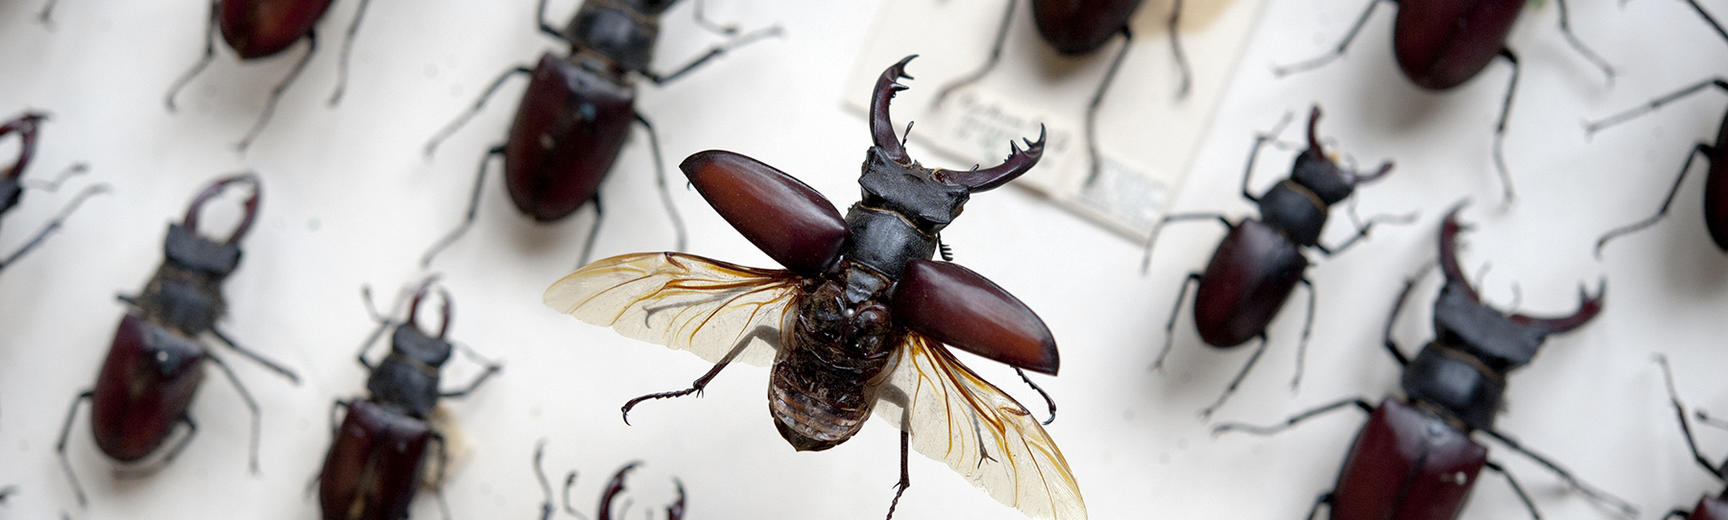 stag beetle 4 oumnh